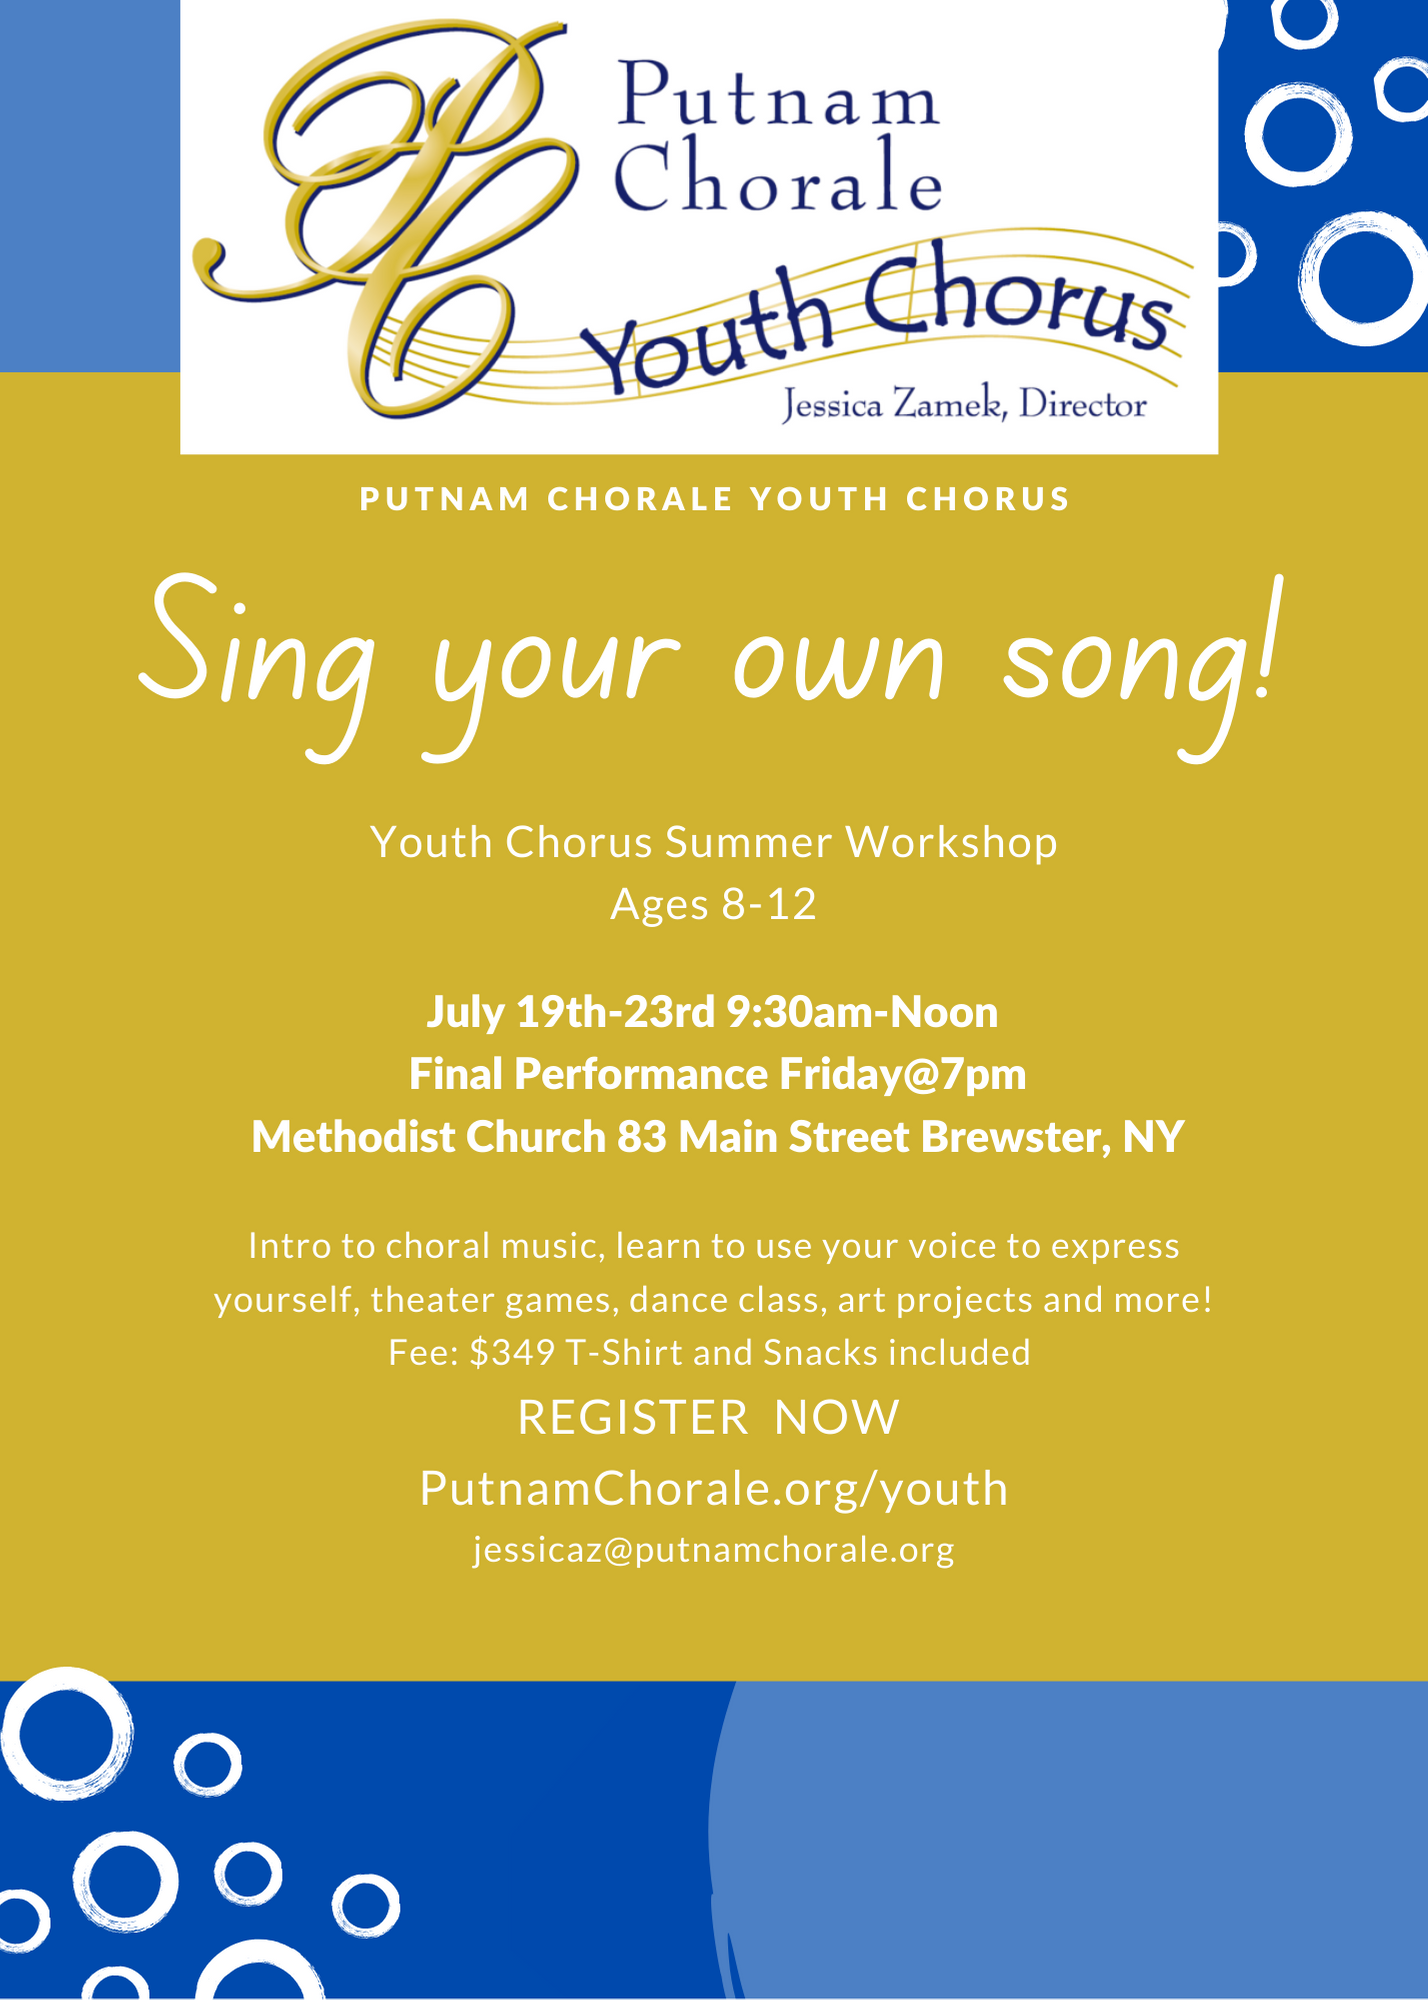 Putnam Chorale Sing Your Own Song